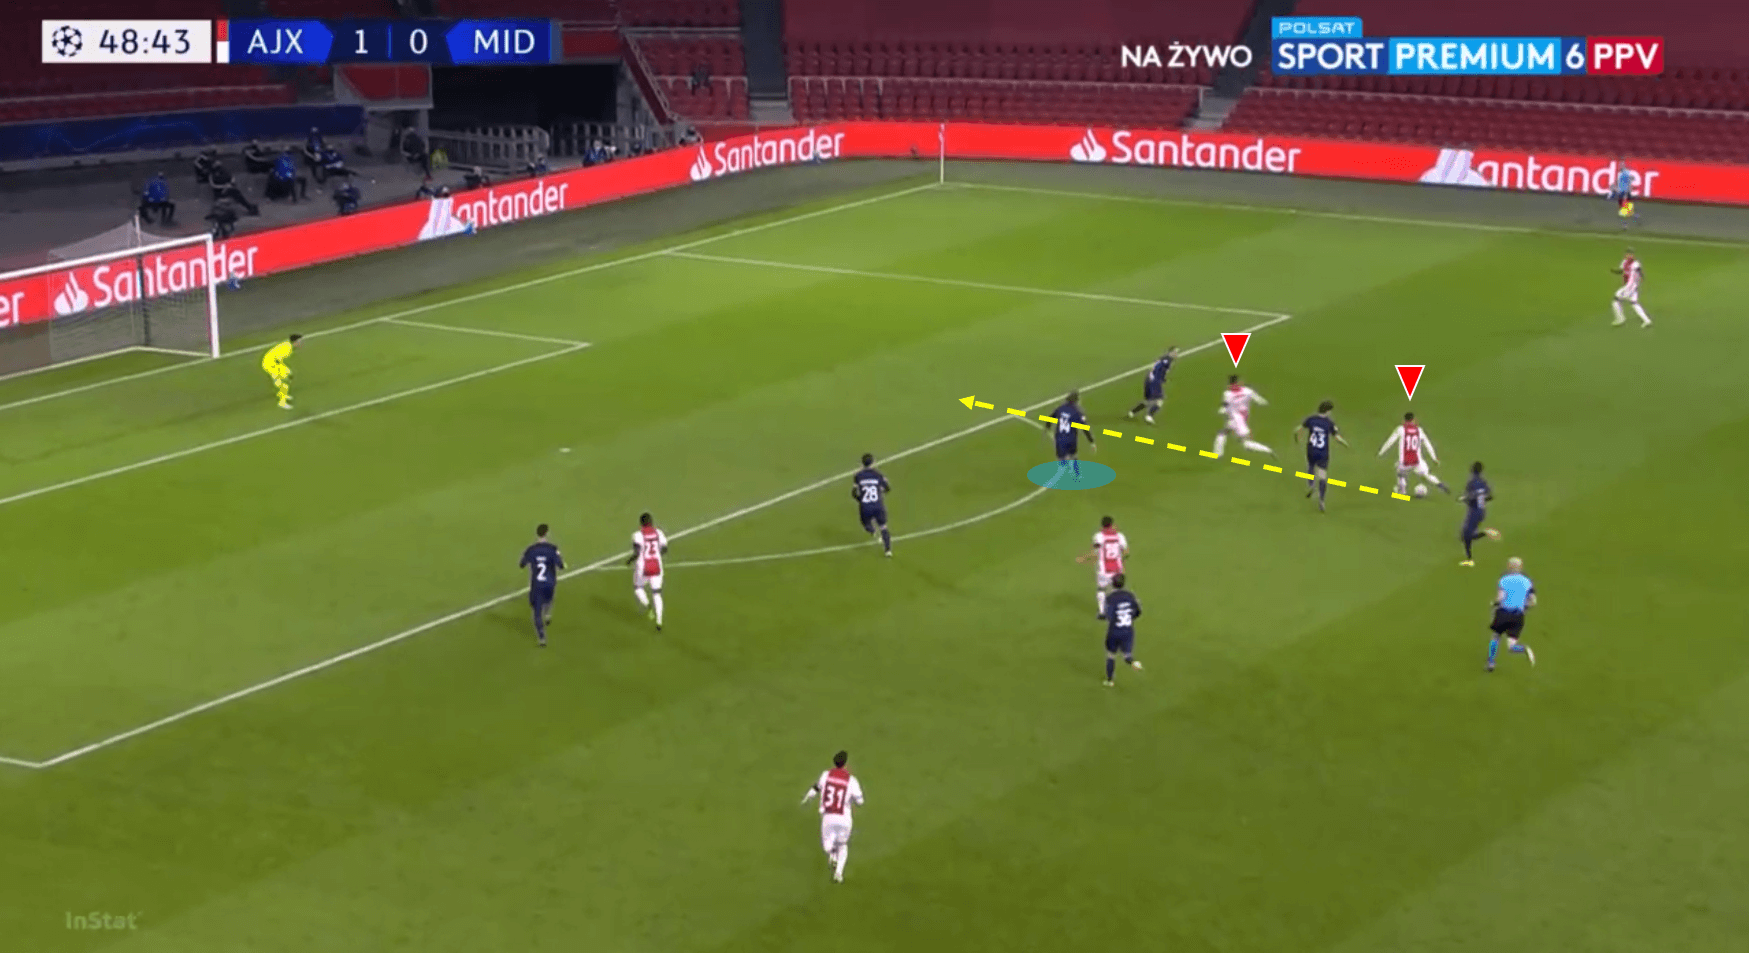 Champions League 2020/21 : Ajax vs Midtjylland - Tactical Analysis tactics